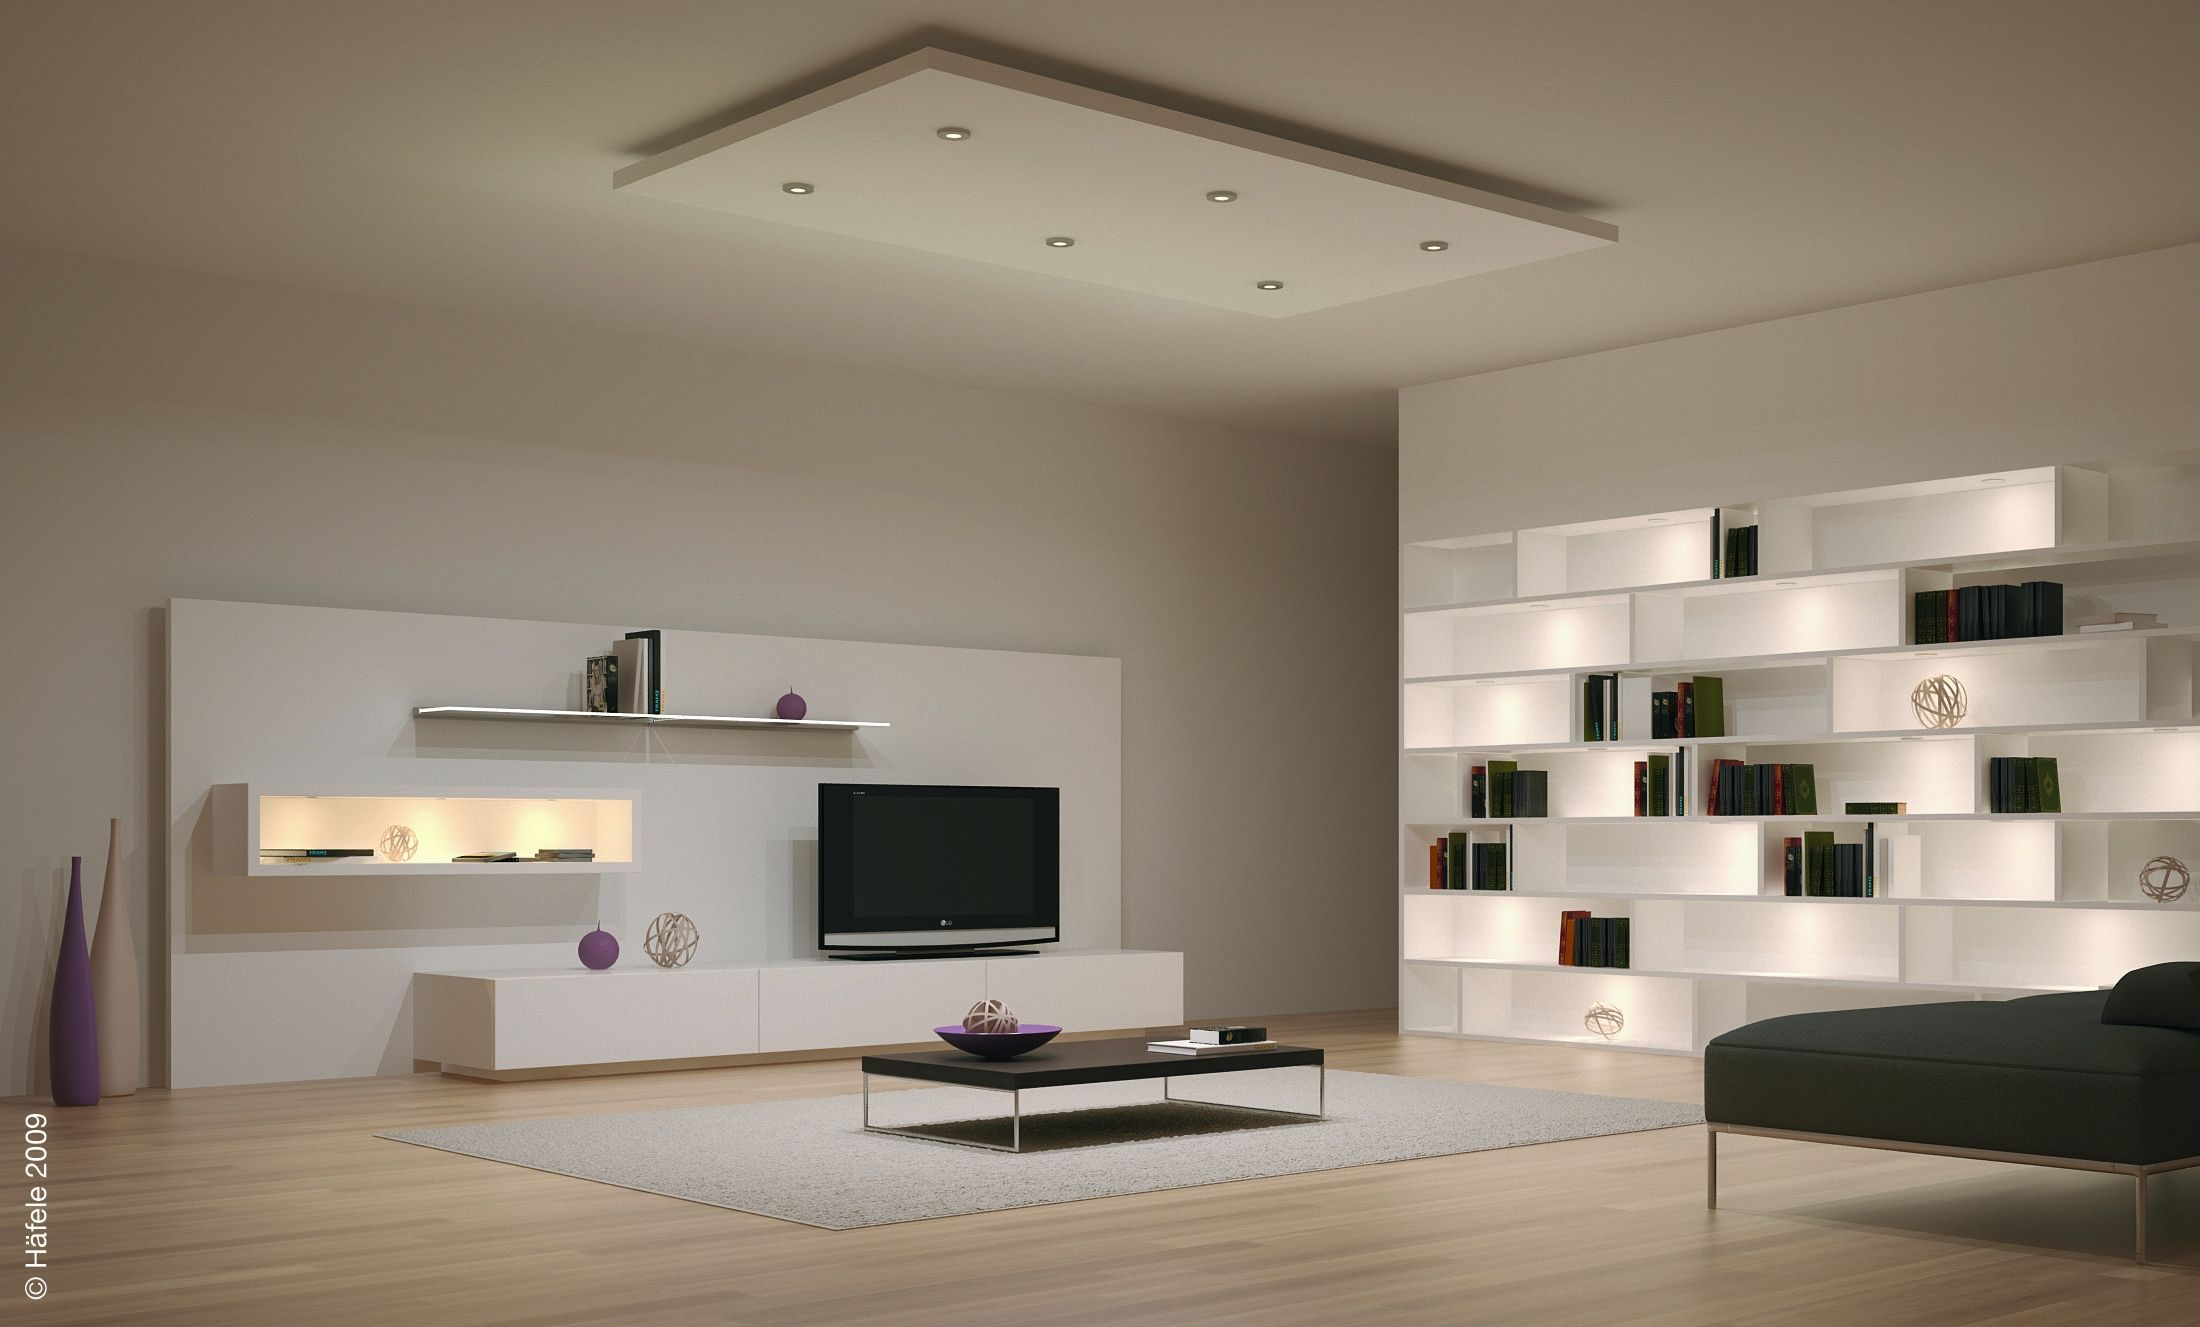 Ceiling Designs For Your Living Room Woonkamerverlichting